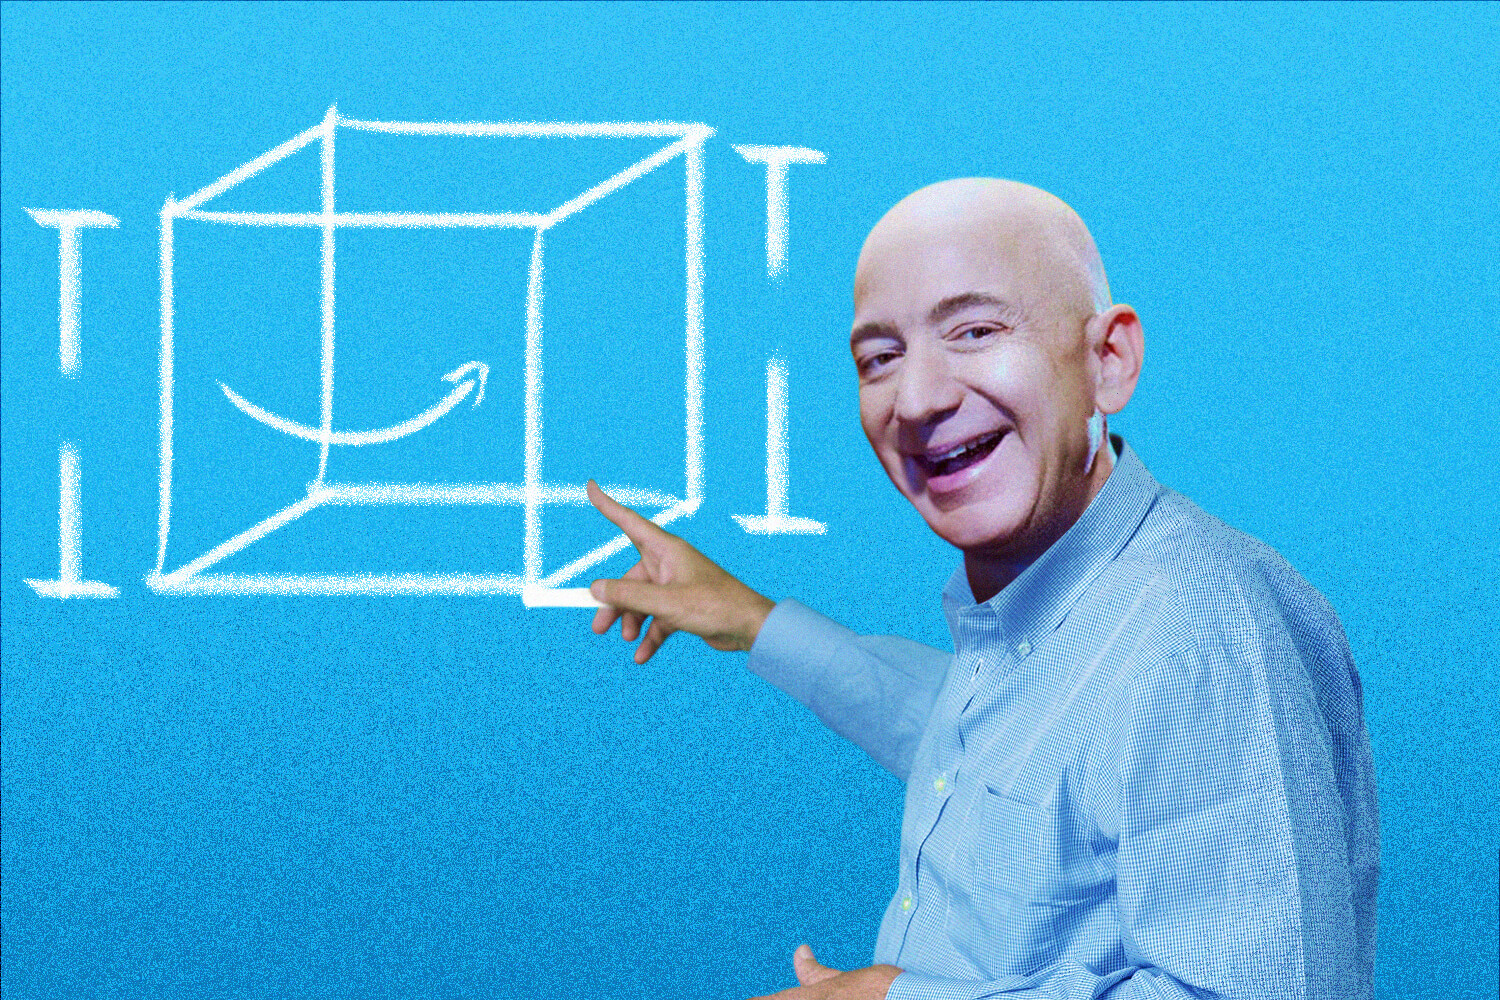 Clean up in aisle Bezos  Francis Scialabba